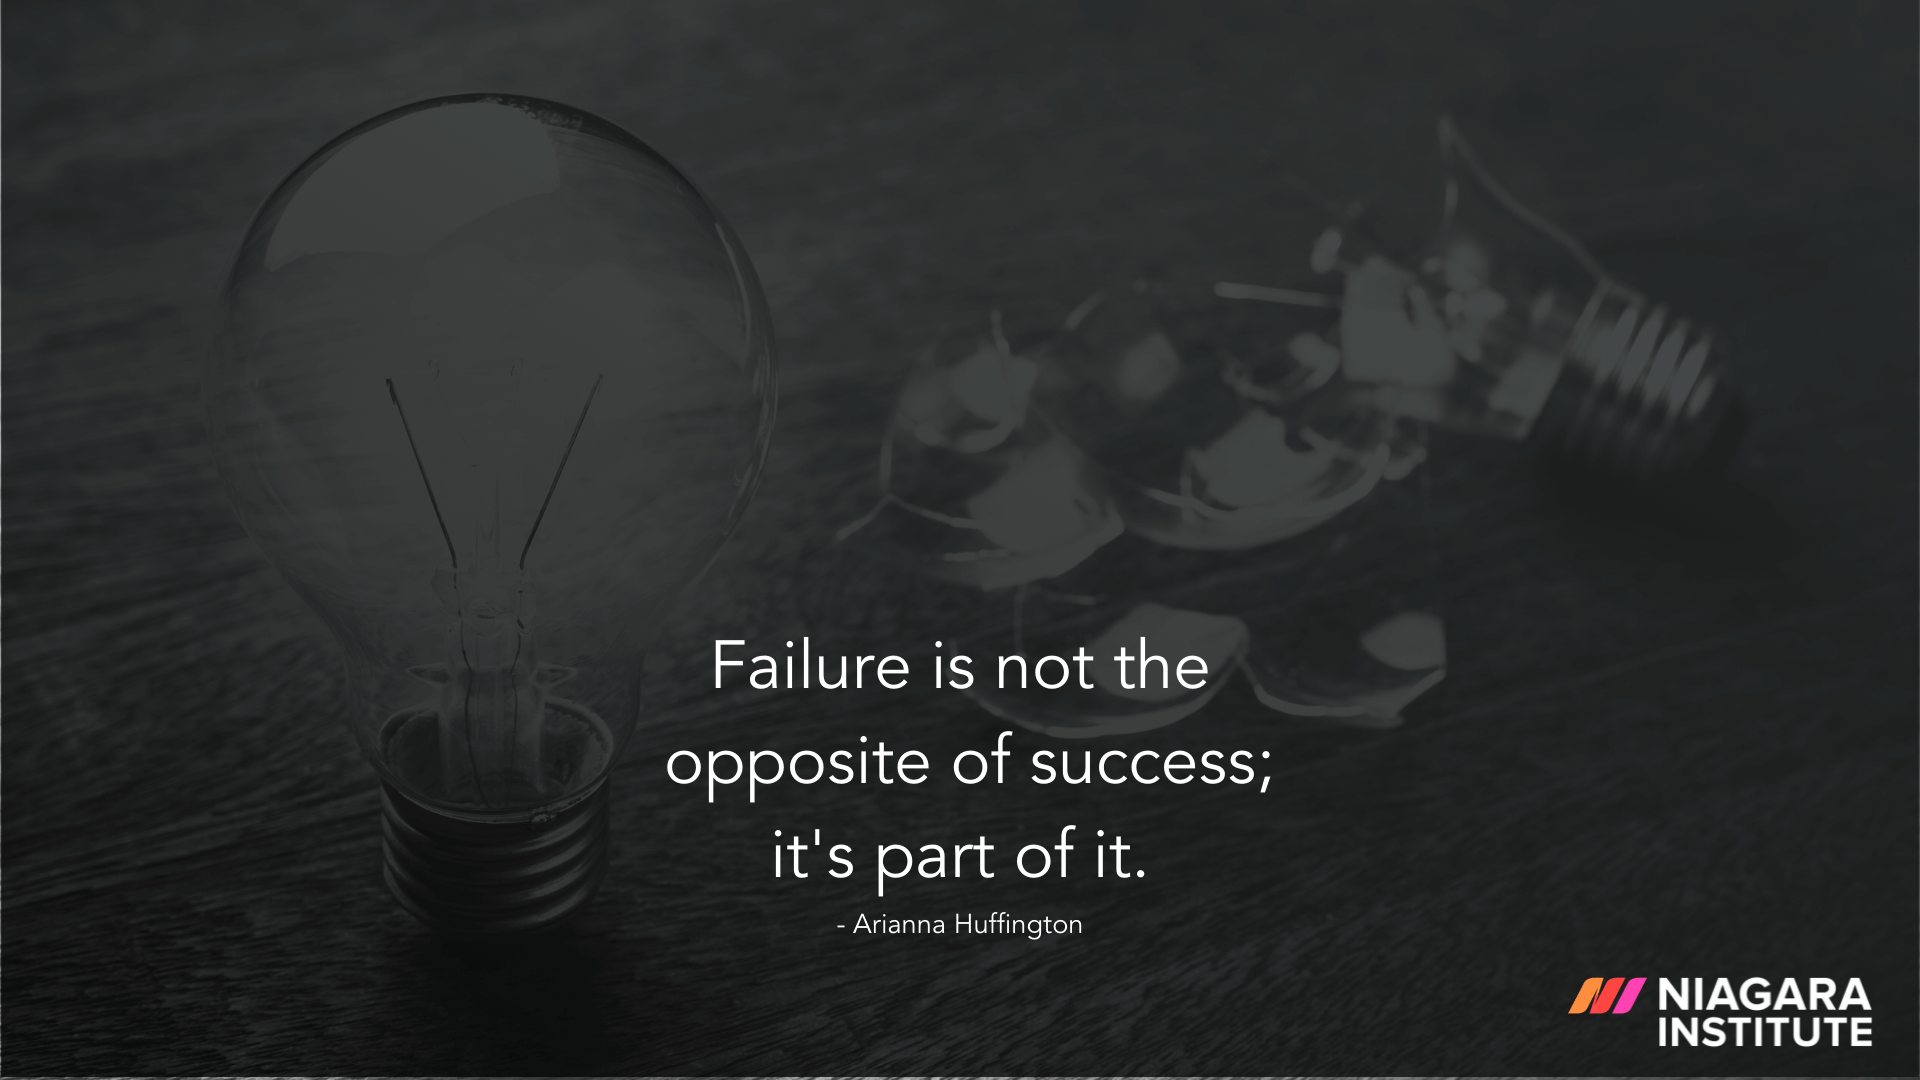 Failure is not the opposite of success; it's part of success - Arianna Huffington